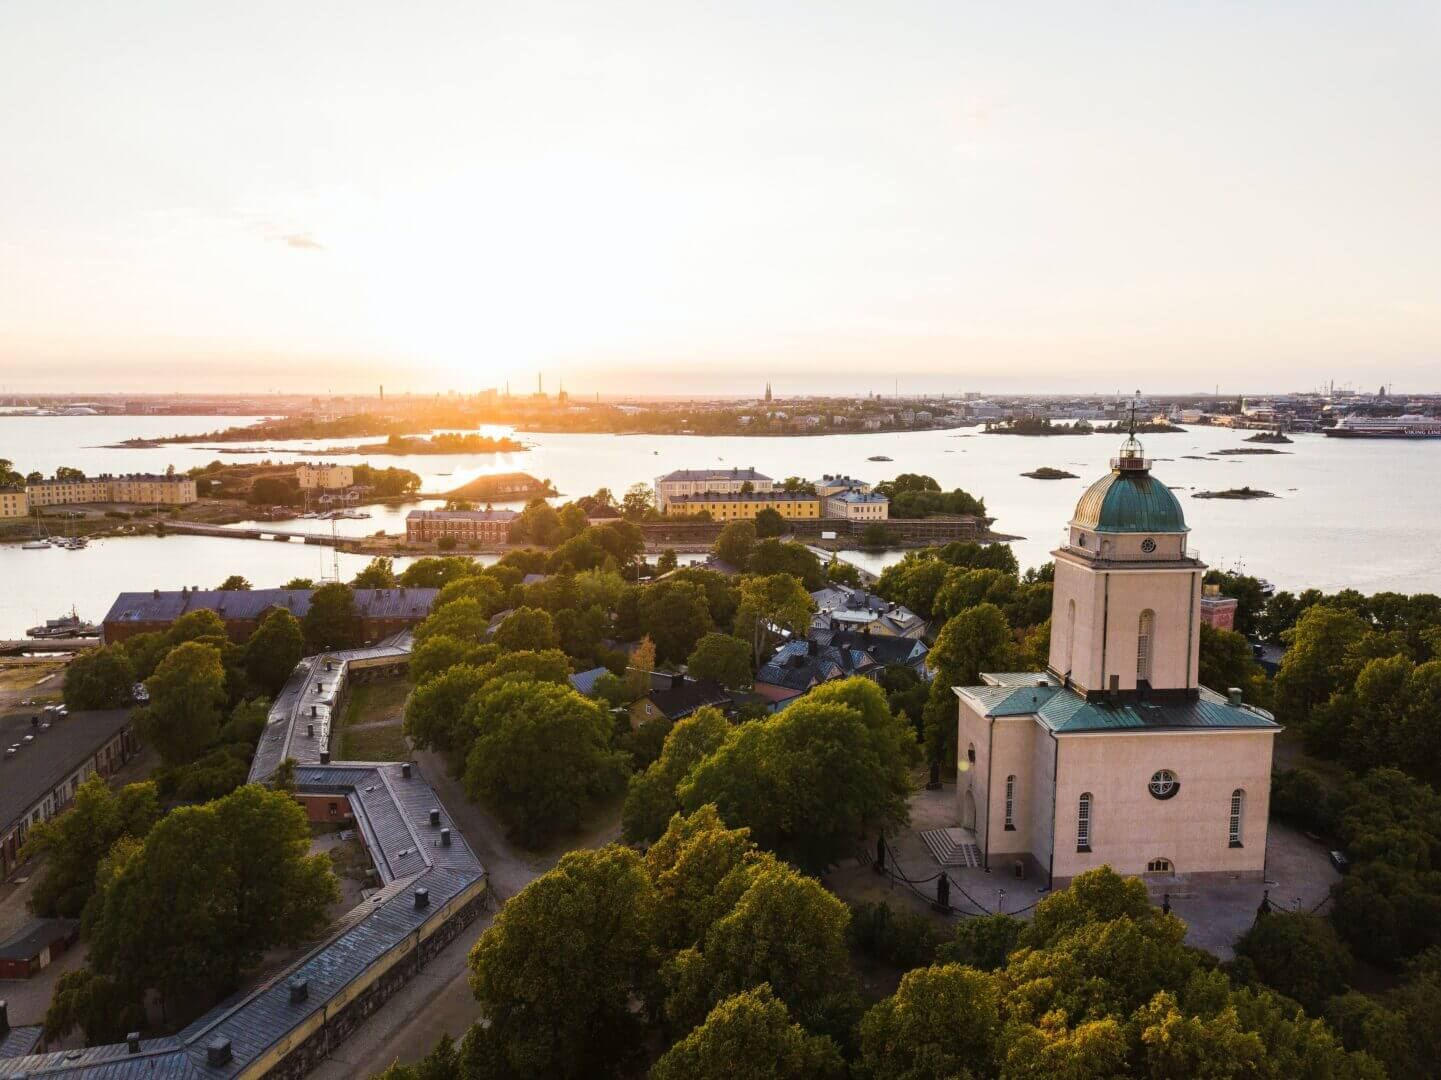 Sunset over Suomenlinna Sea Fortress in Helsinki. Suomenlinna fortress is an UNESCO world heritage site and the biggest tourist attraction in Helsinki - Photo by Julius Jansson on Unsplash